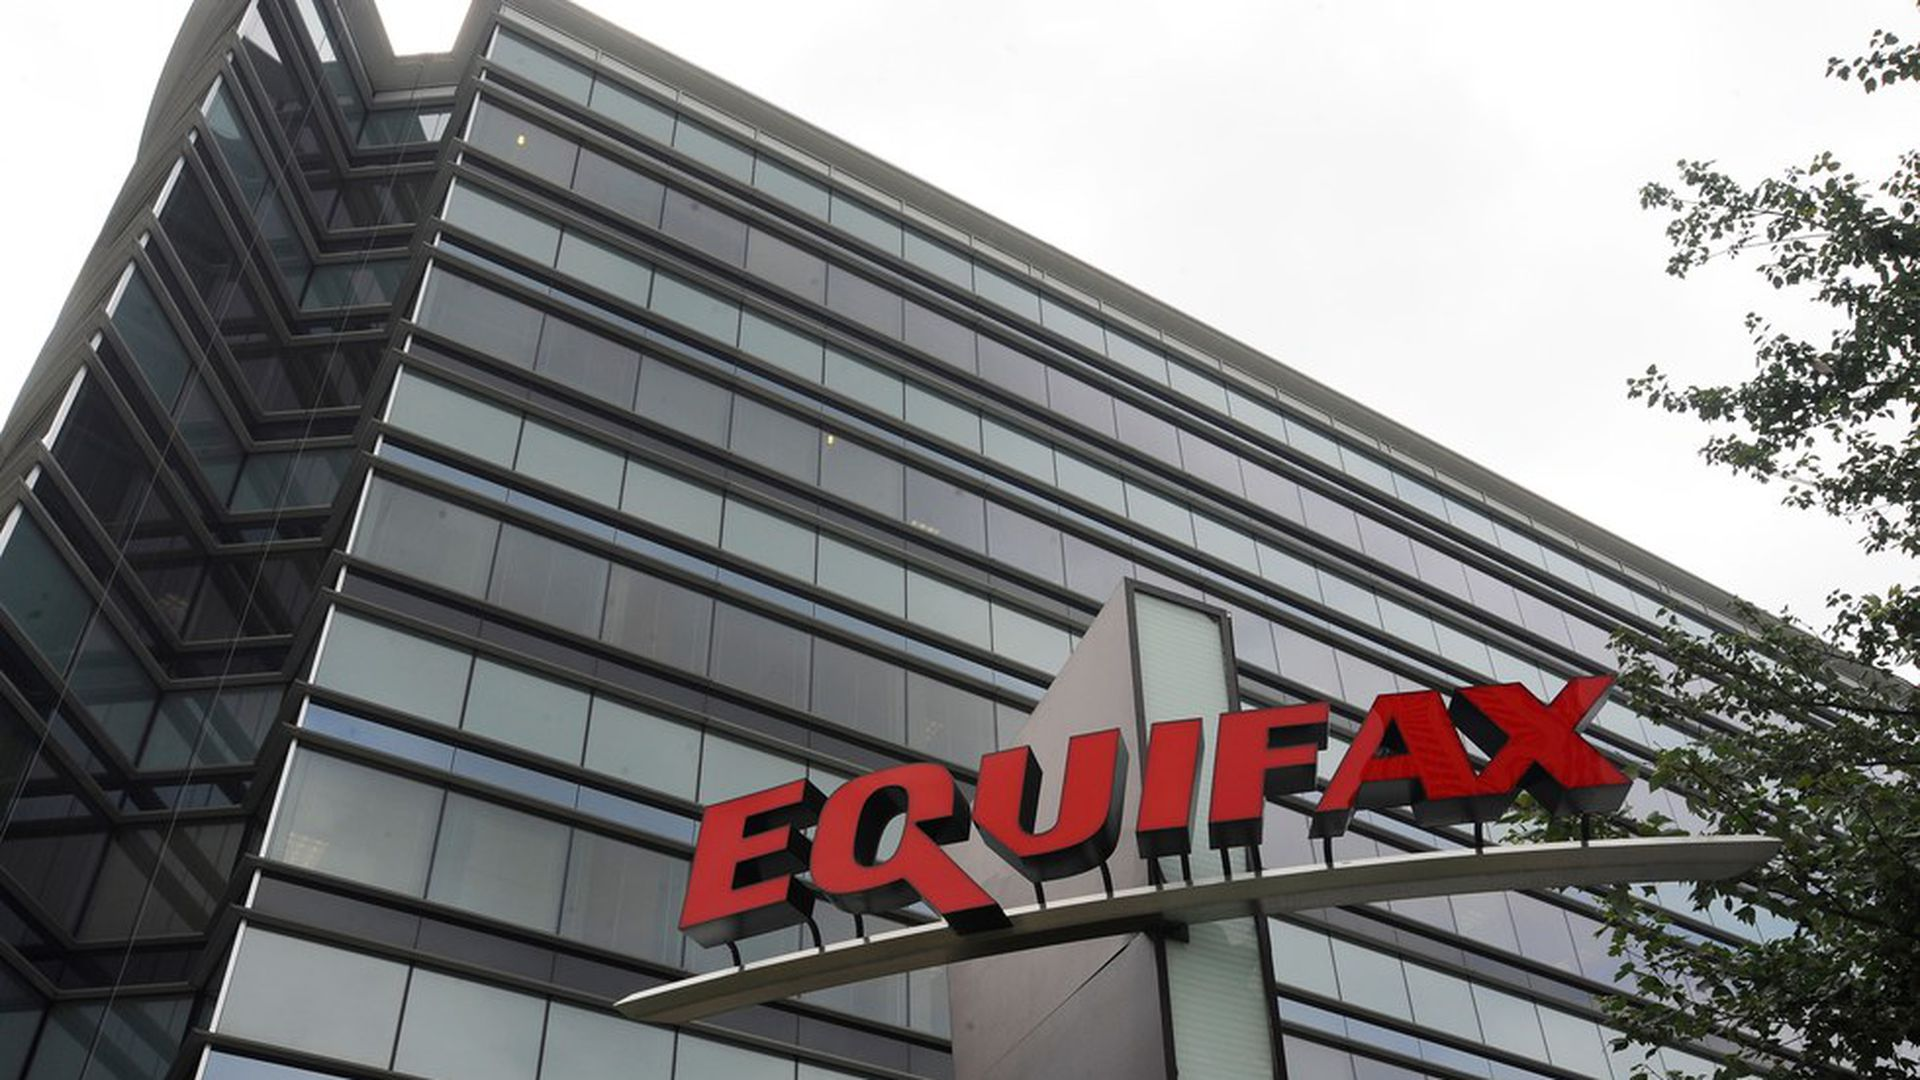 The FTC is investigating the Equifax data breach